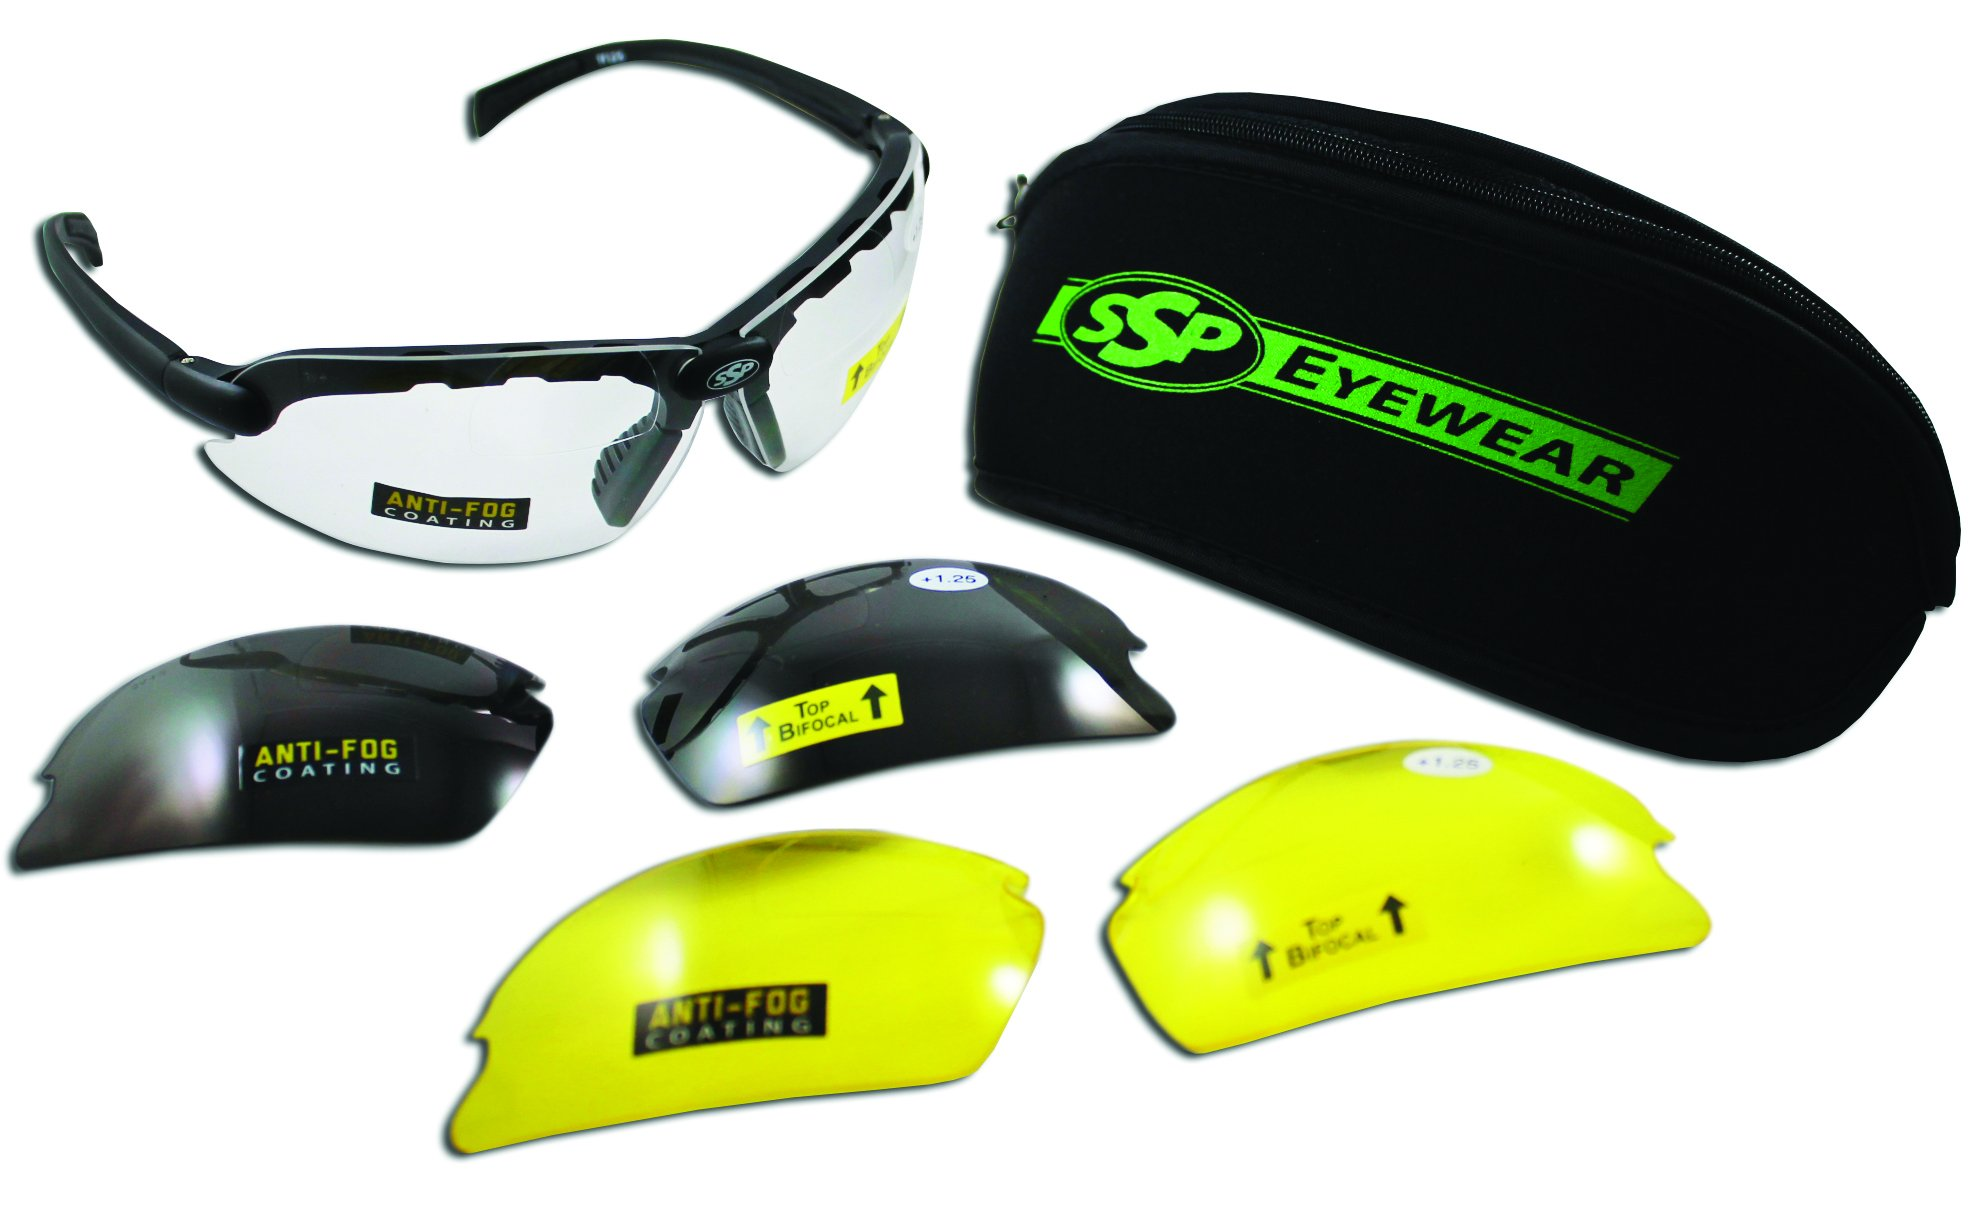 SSP Eyewear Top Focal Tactical Safety Glasses Kit with Assorted Interchangeable 1.50 Bifocal Lenses,TF 1.50 AST KIT by SSP Eyewear